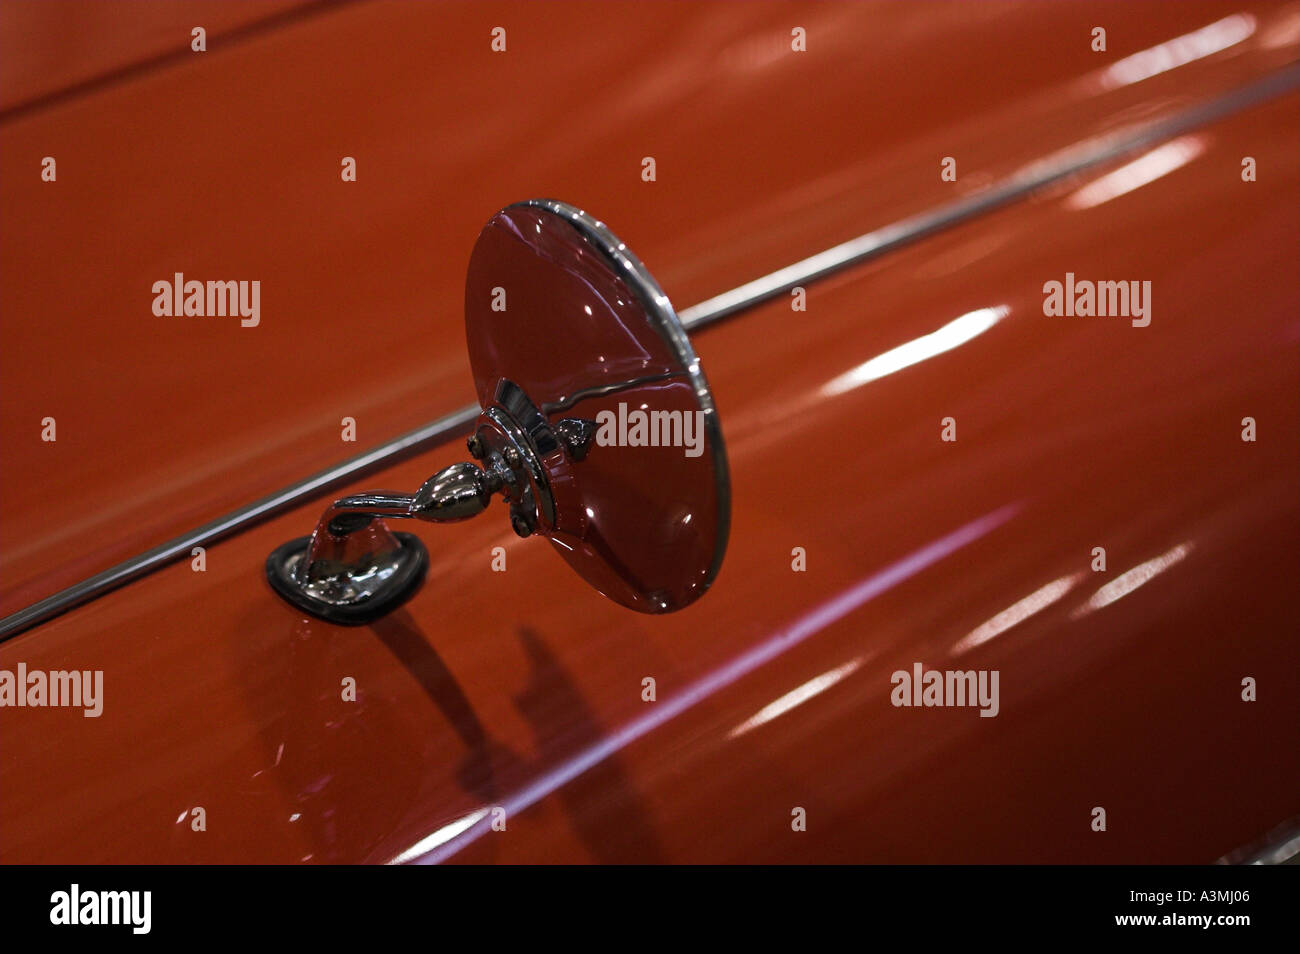 old collectible car show shinny british classic sport red orange mirror - Stock Image